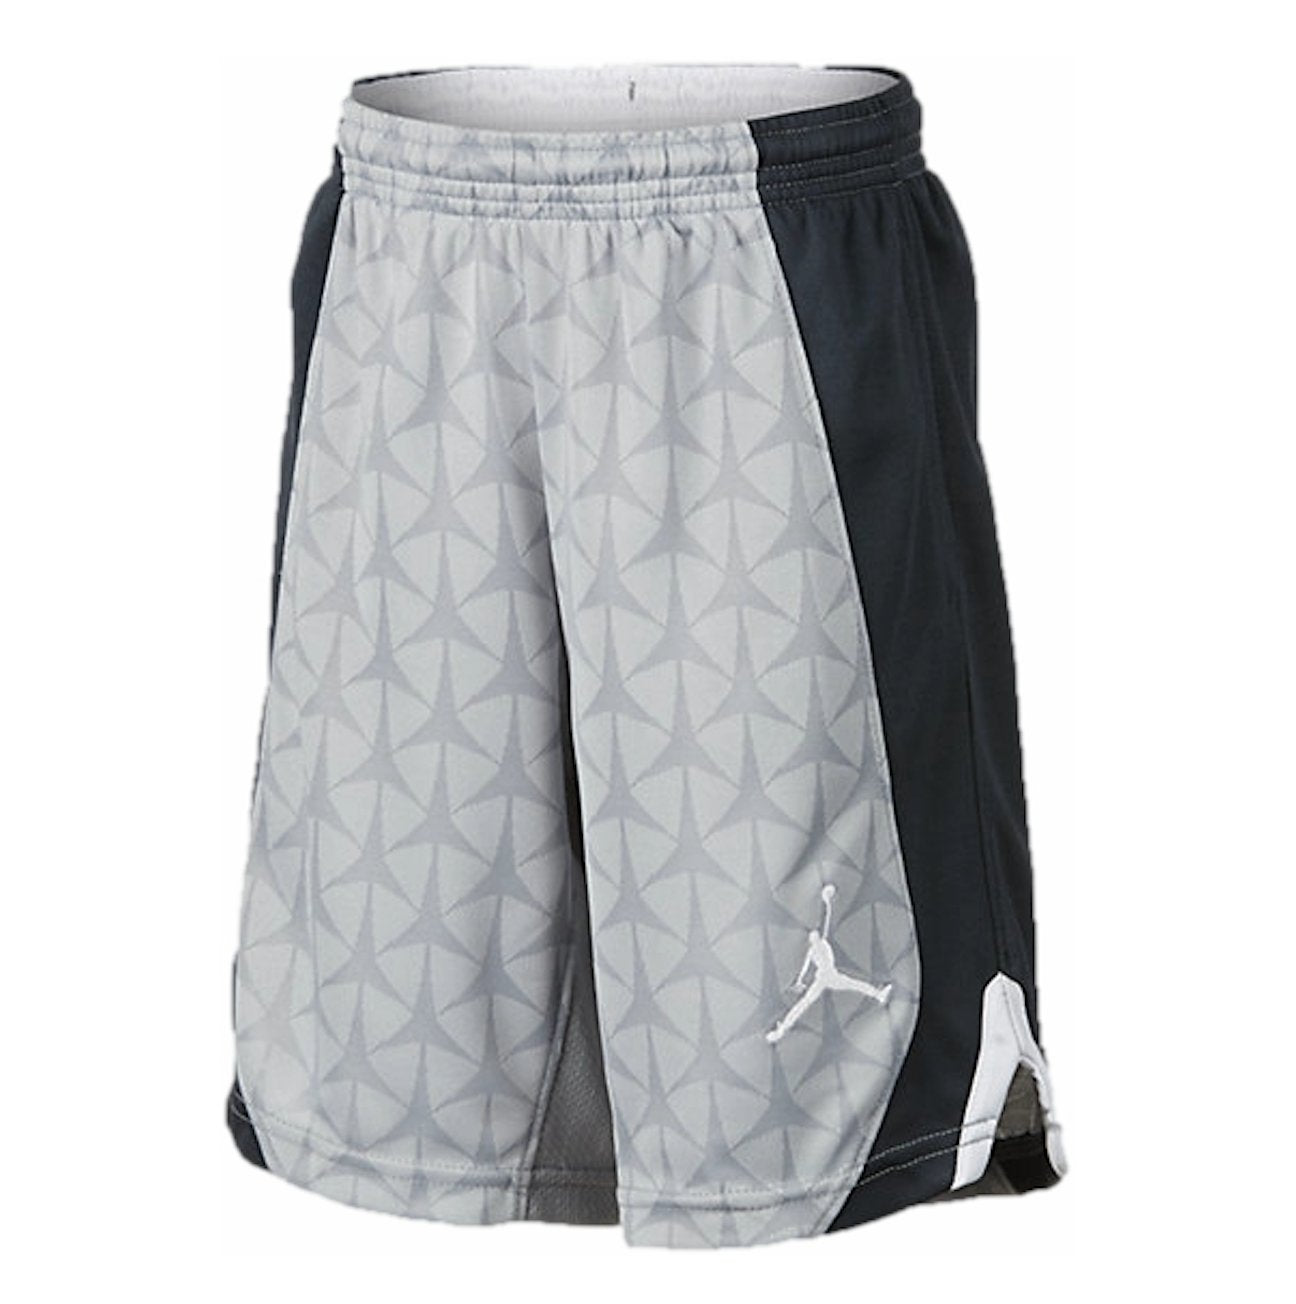 Nike Jordan Flight Knit Boys Basketball Shorts Size Large (Boys)